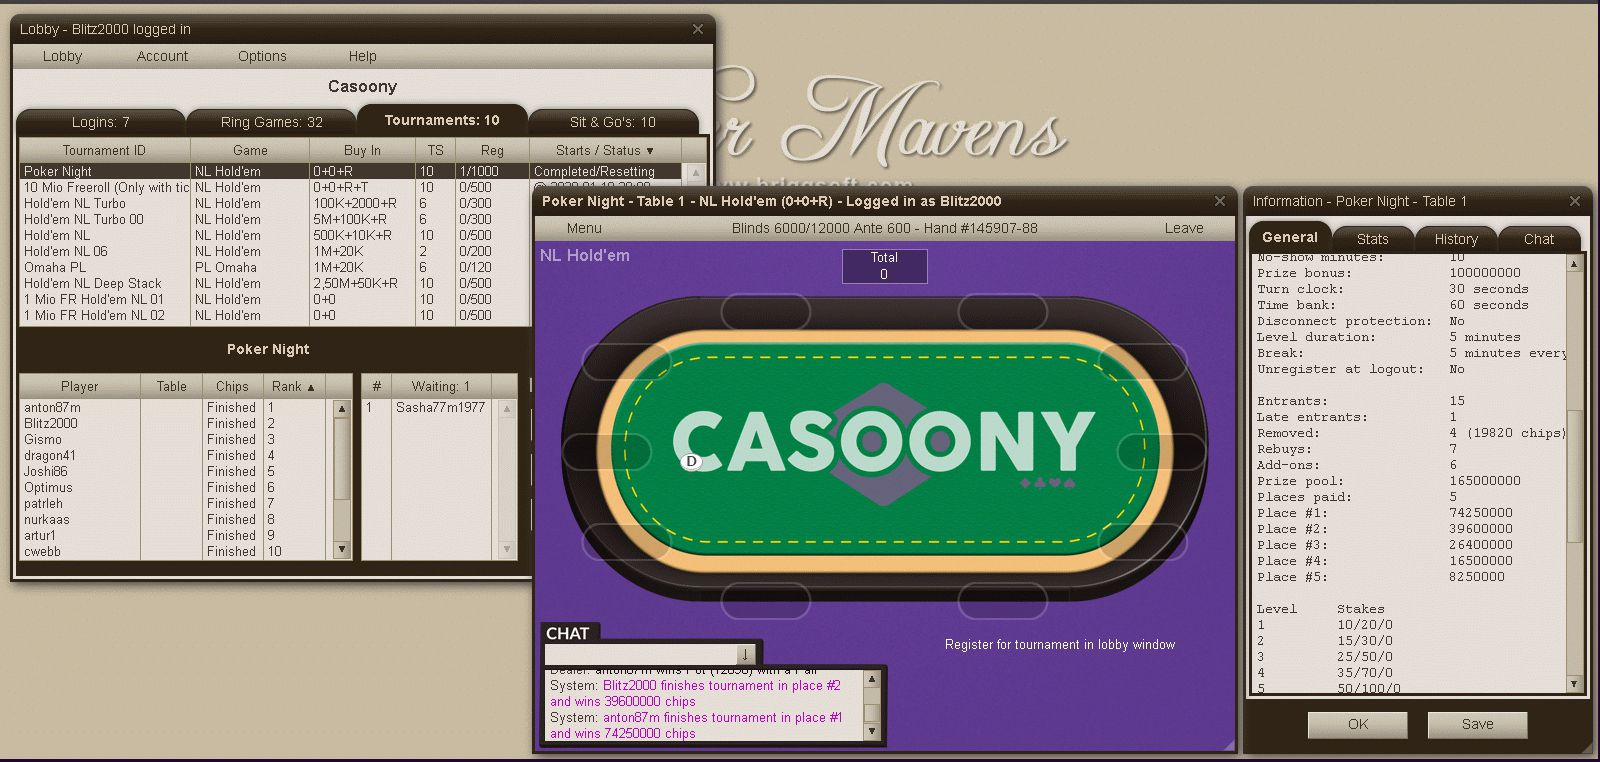 Casoony_Poker_Lobby-PokerNight_20200112_2141_2NDPLACE_SHOW.gif